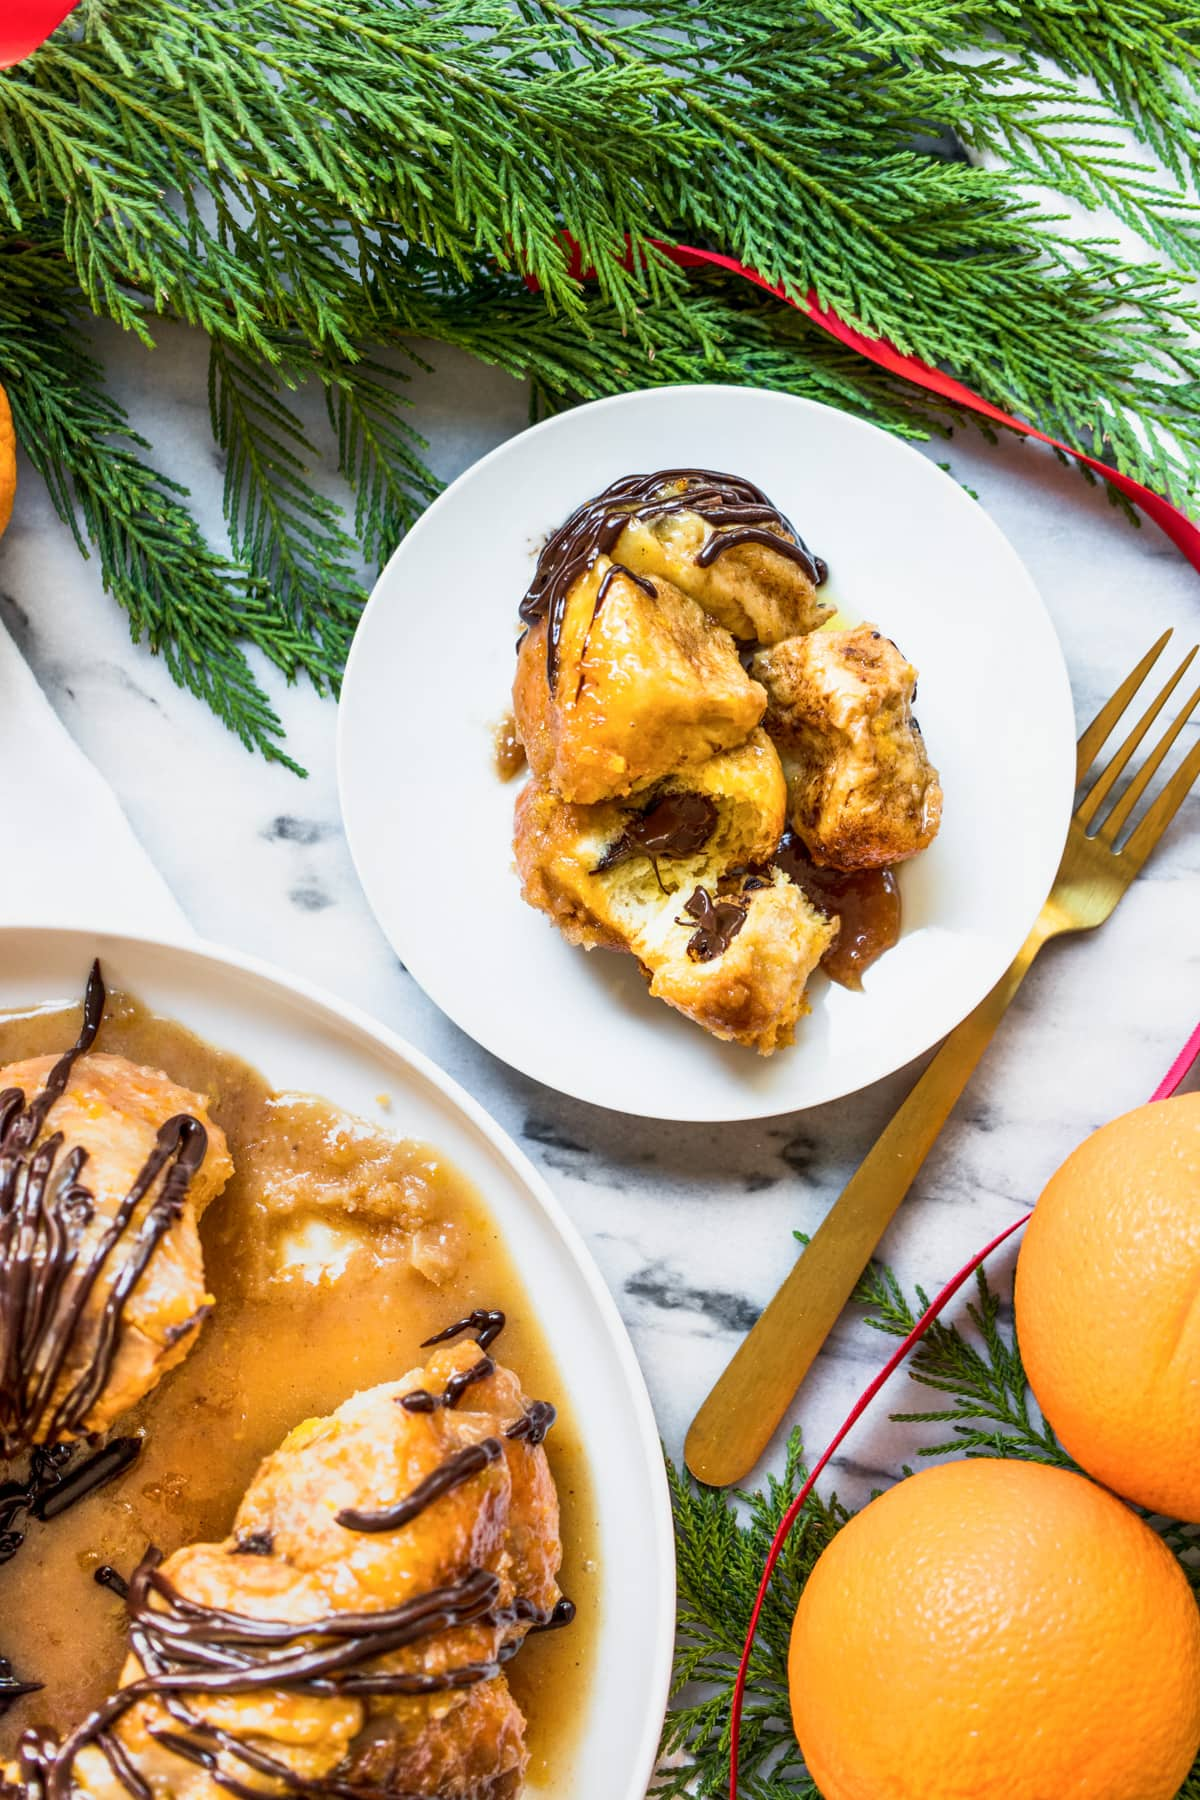 dessert is served! an easy monkey bread recipe with chocolate and orange flavors (or whatever floats your boat!) for the holidays! by top Houston lifestyle blogger Ashley Rose of Sugar & Cloth - #recipe #easy #christmas #holidays #quickrecipes #easyrecipe #holiday #winter